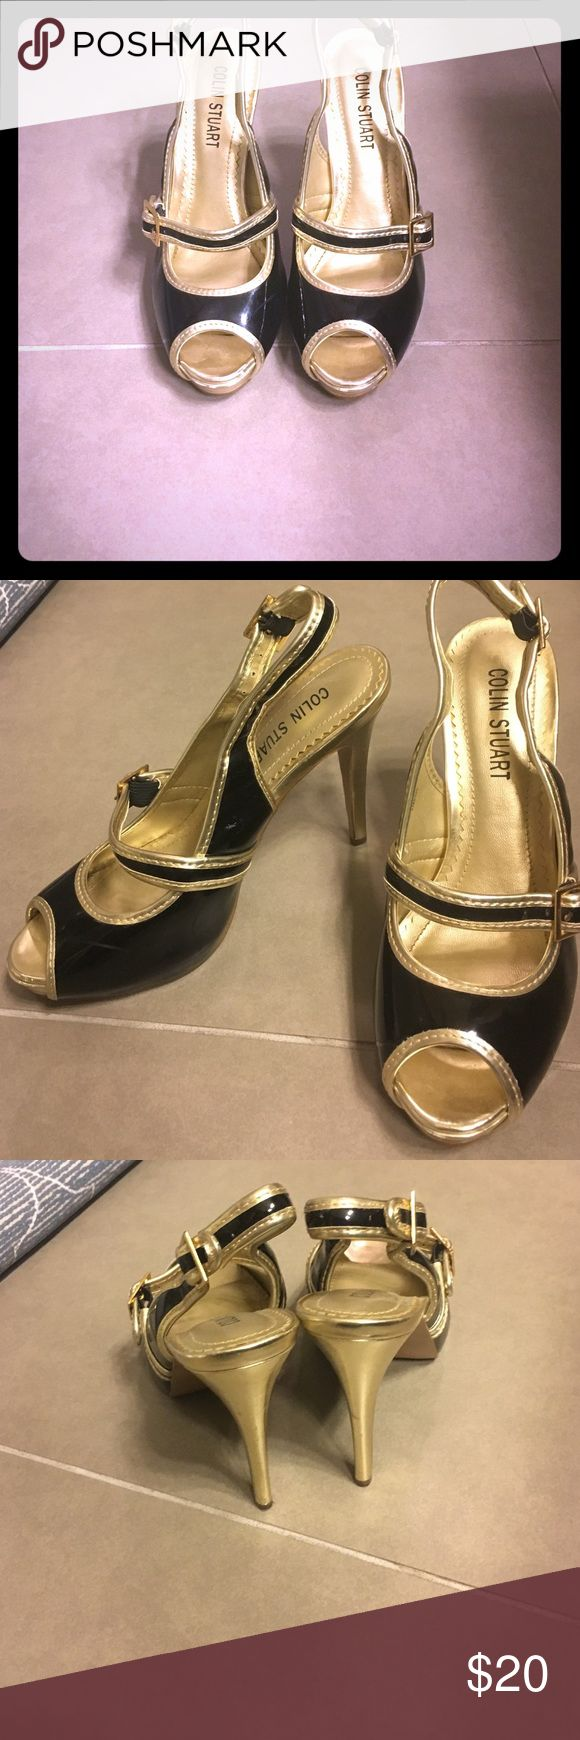 Colin Stuart peep toe Mary Janes Like new. Had a baby and can't wear heels any longer. Colin Stuart Shoes Heels